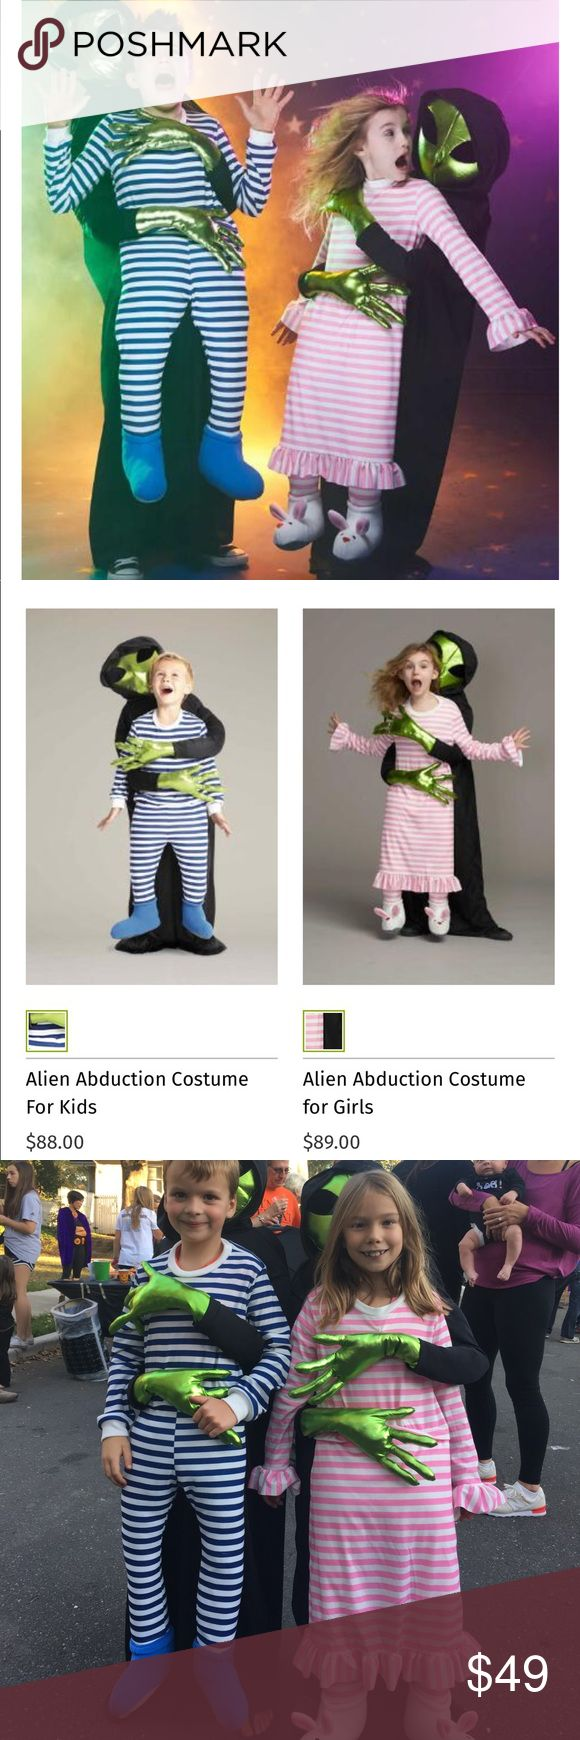 Alien Abduction Costume for Girls - HUGE hit! Best Halloween costume ever!  Lots of people asking for pictures!  Girl version only.  Size 8/10 Chasing Fireflies Costumes Halloween